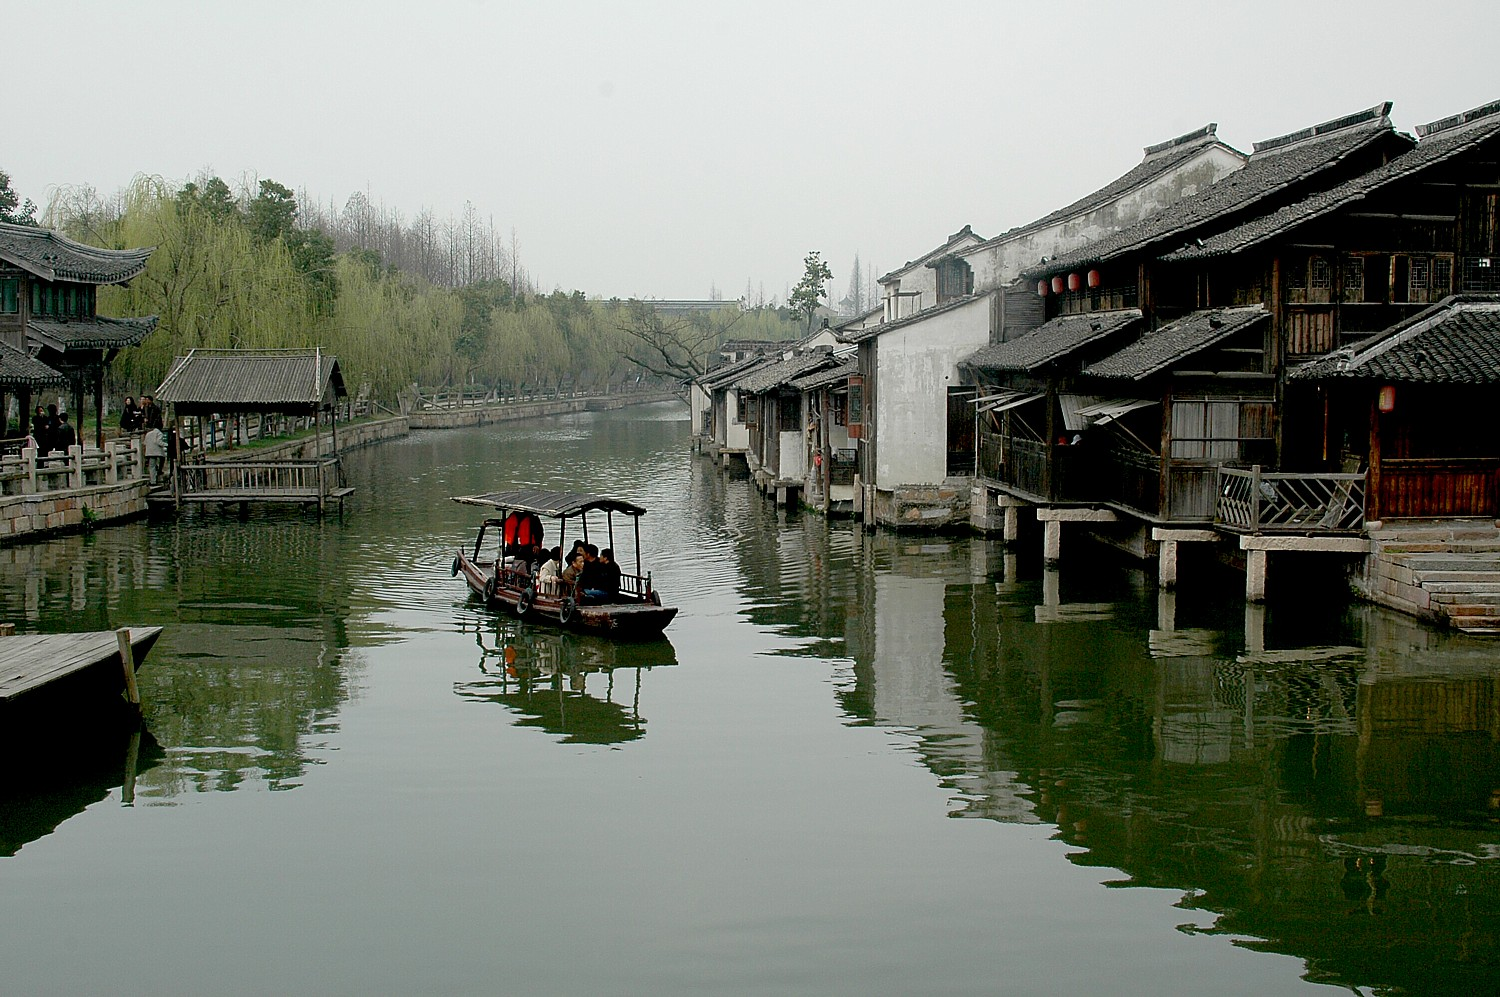 Wuzhen, one of the ancient river towns, has been preserved in Zhejiang Province as a living history museum © 2016 Karen Rubin/goingplacesfarandnear.com.